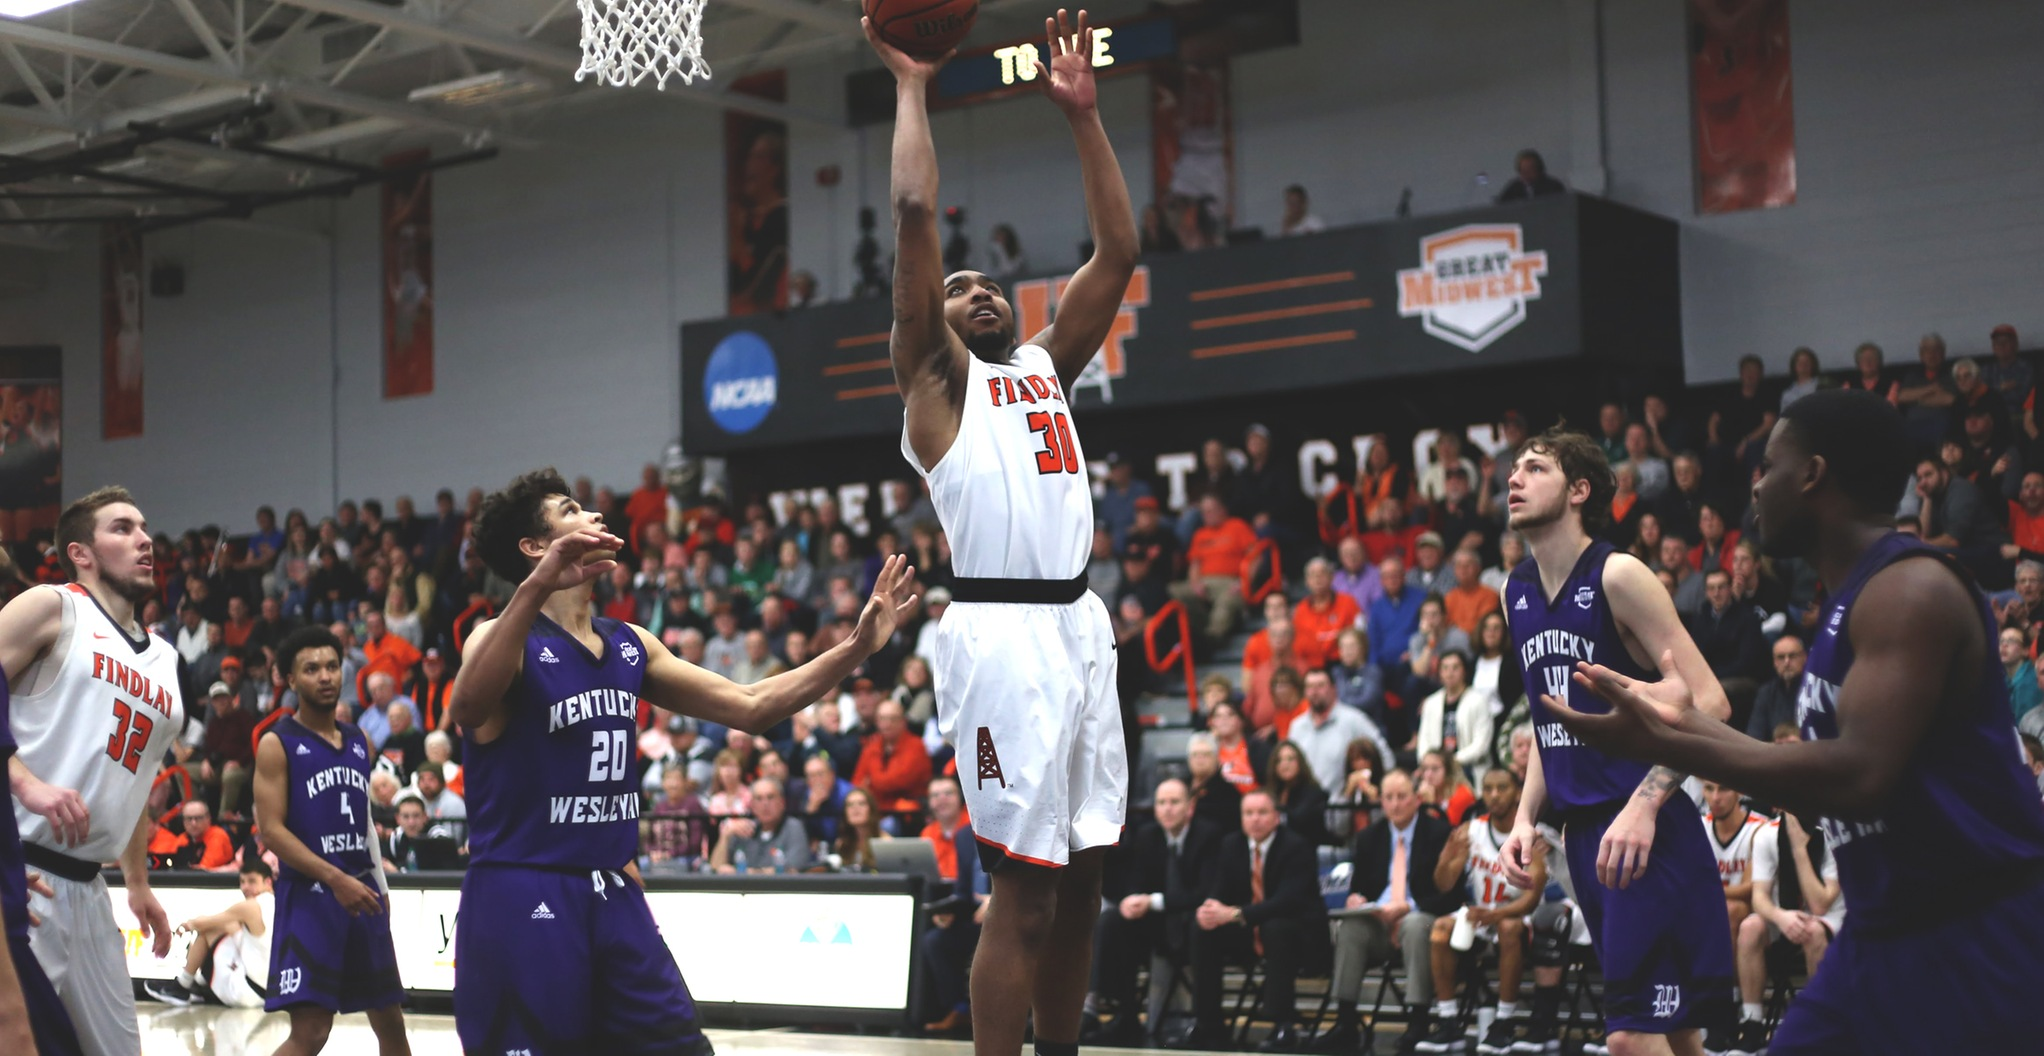 #11 Oilers Cruise to 87-56 Win Over Panthers